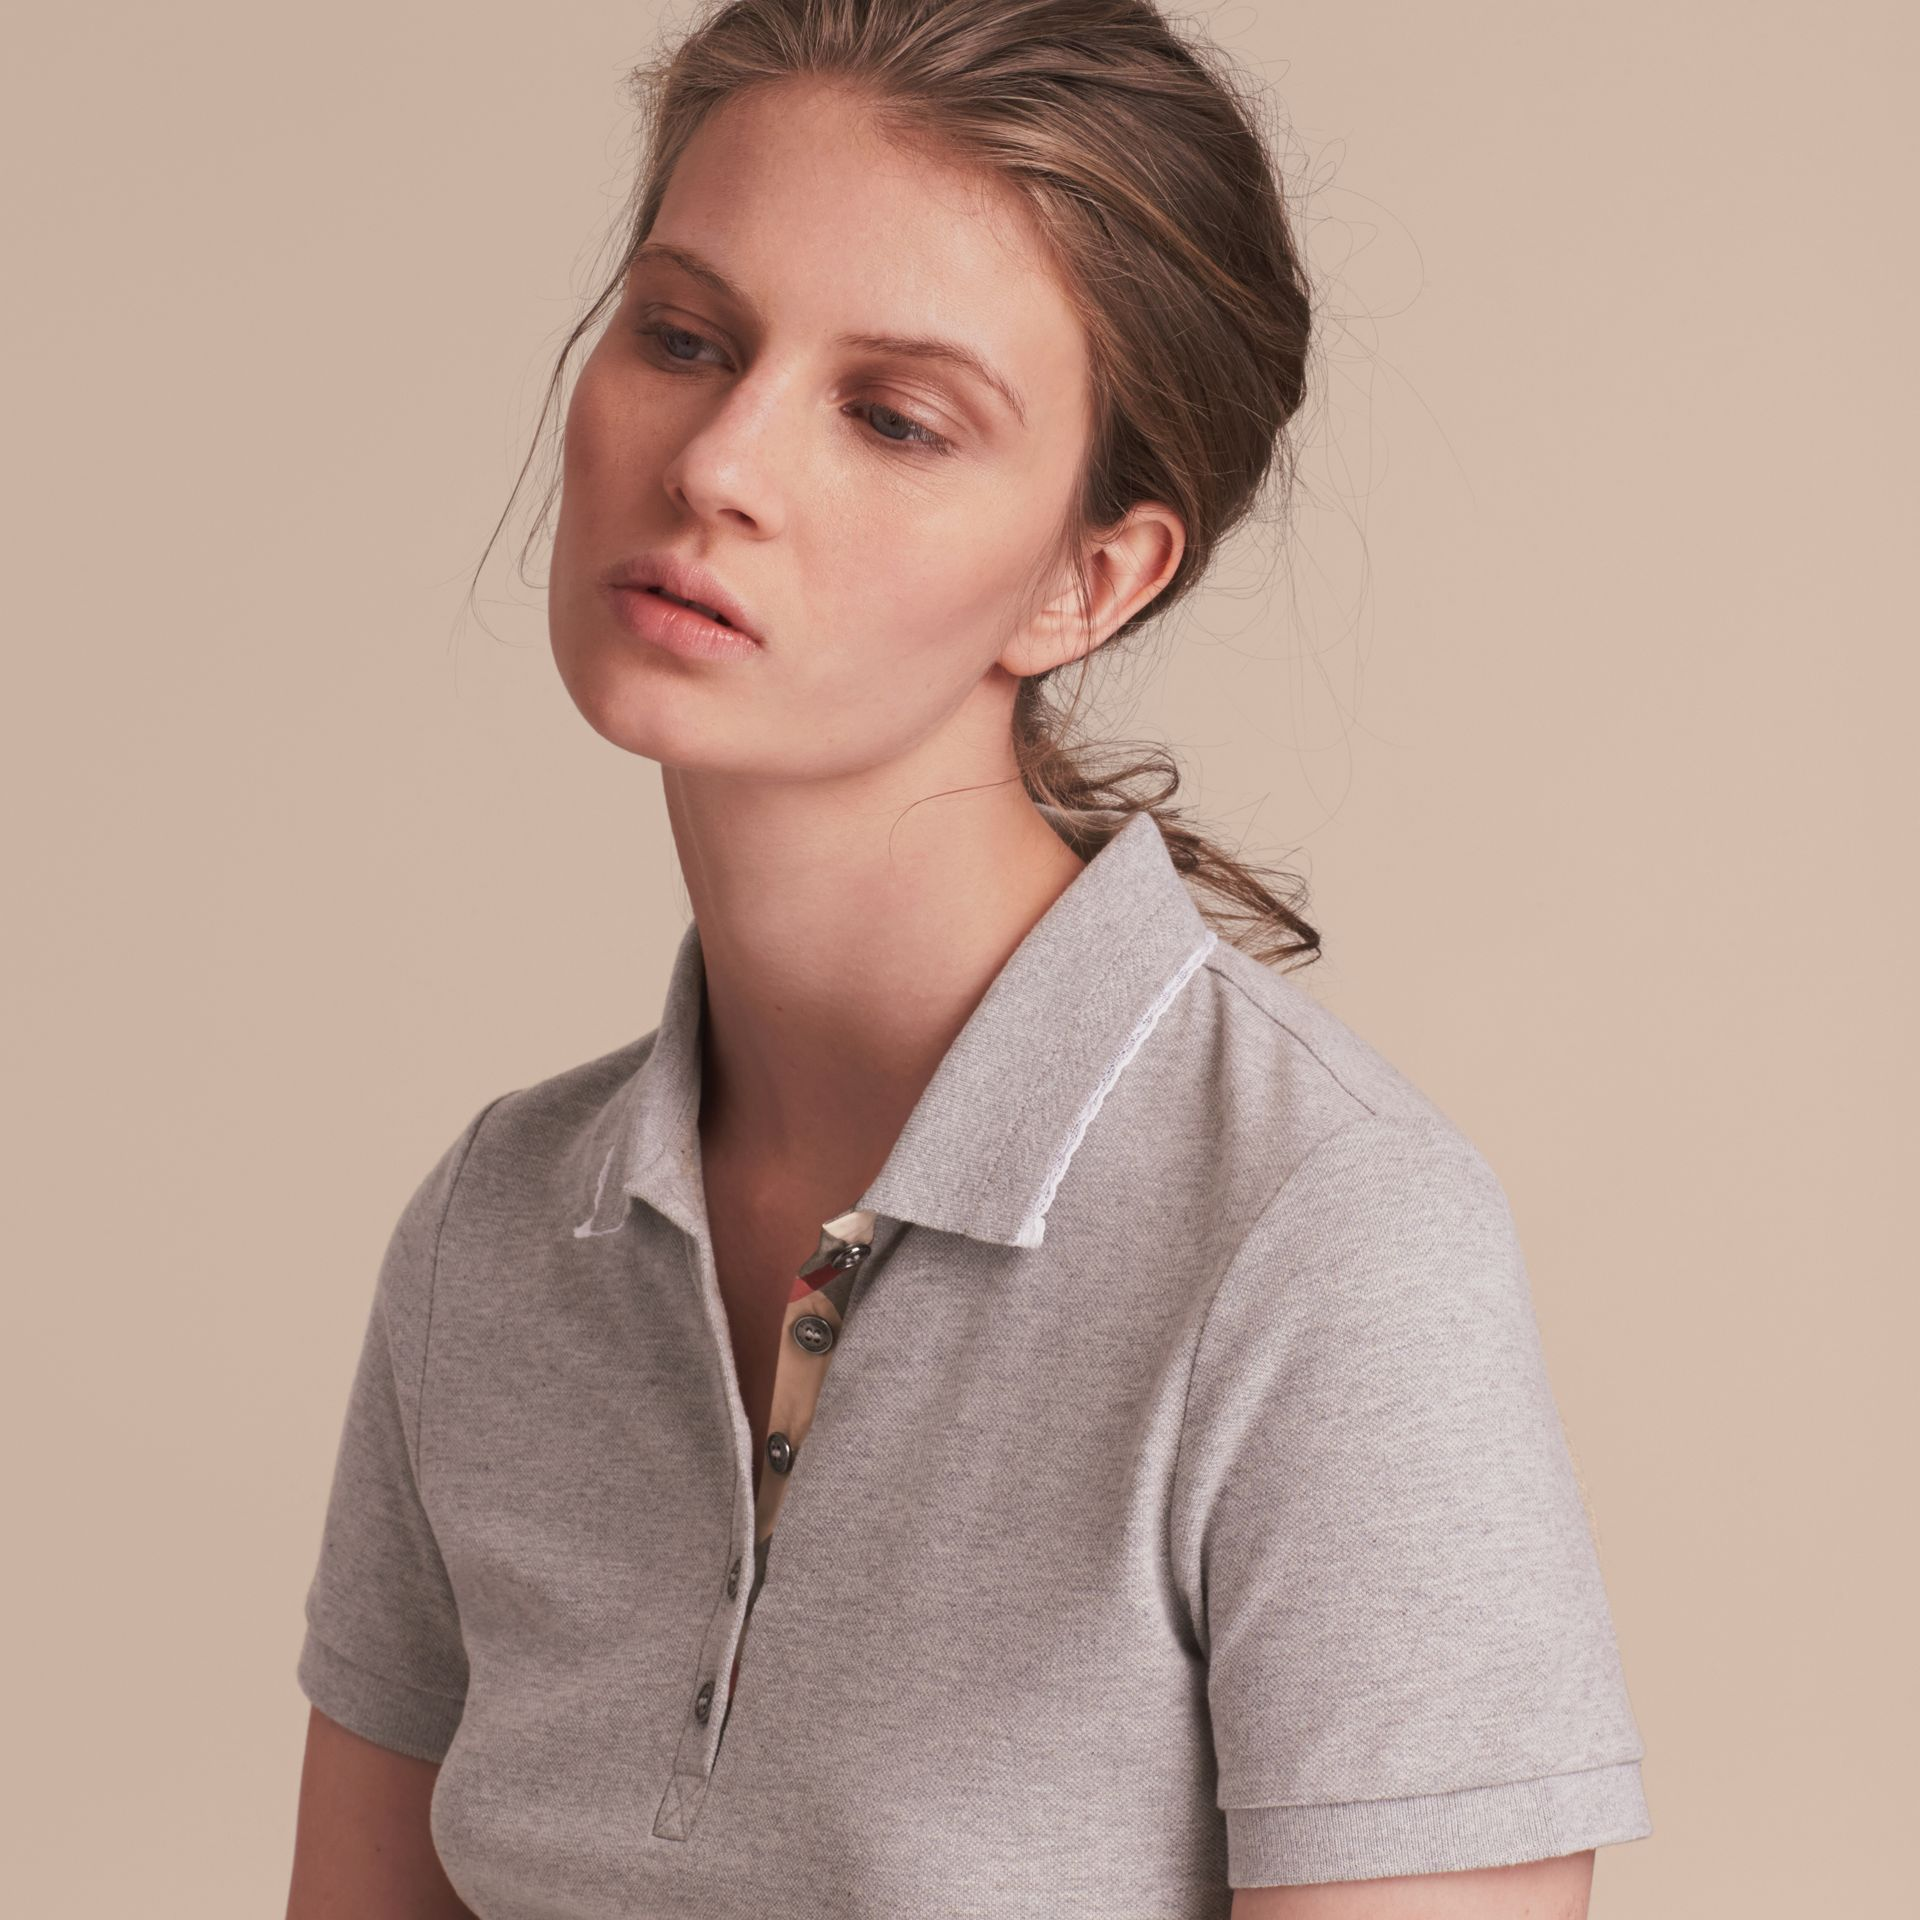 Lace Trim Cotton Blend Polo Shirt with Check Detail in Pale Grey Melange - Women | Burberry - gallery image 5